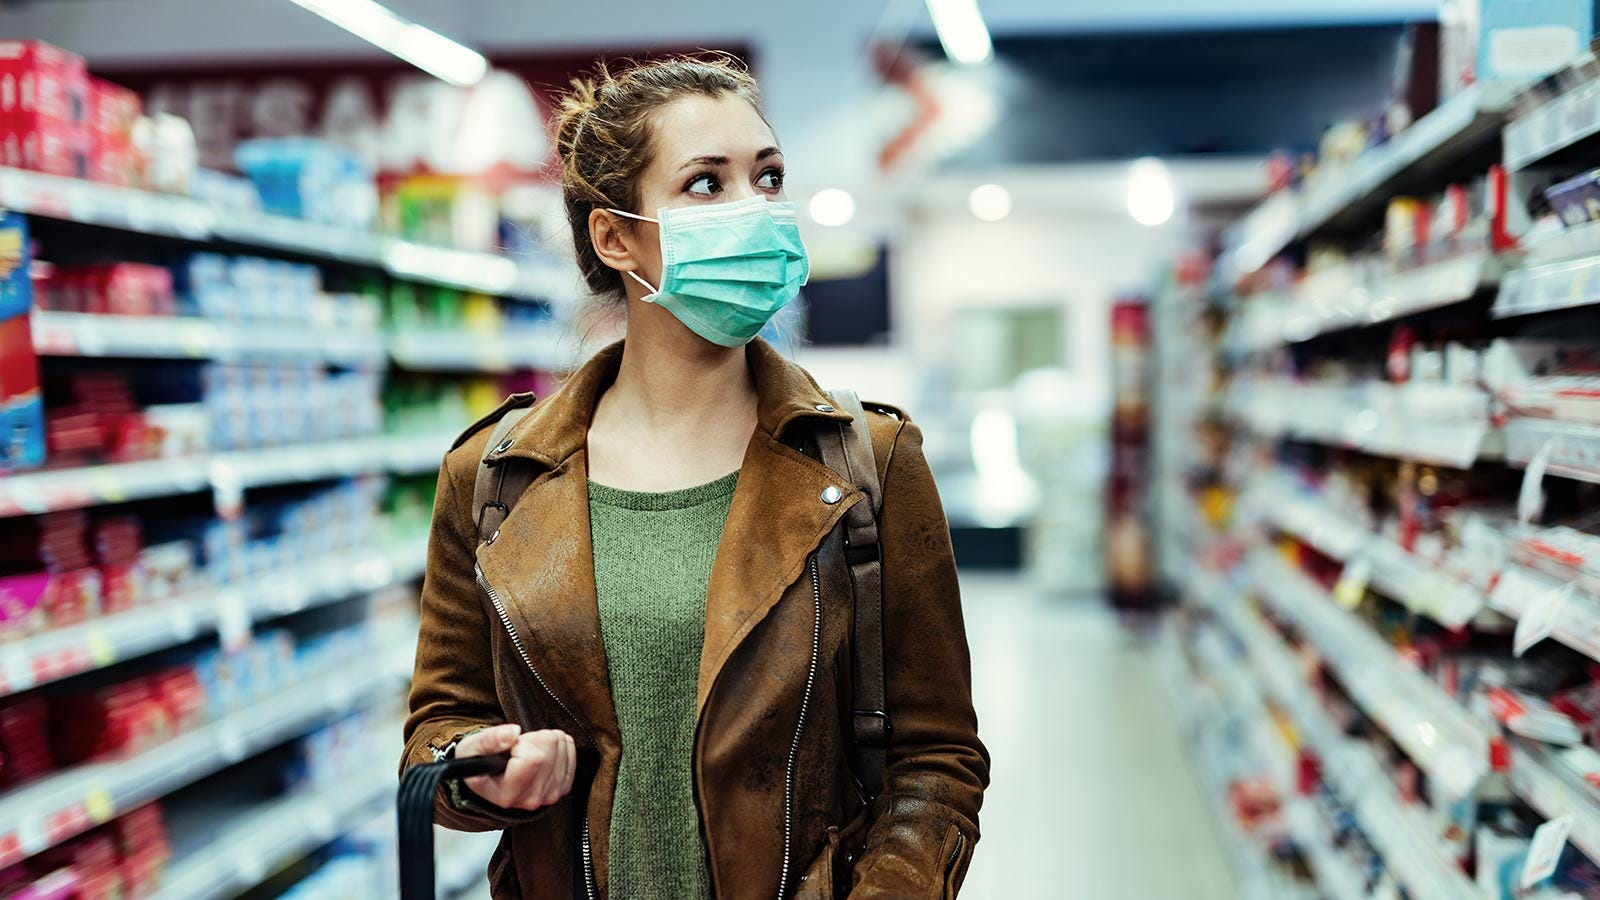 Woman wearing mask while grocery shopping.